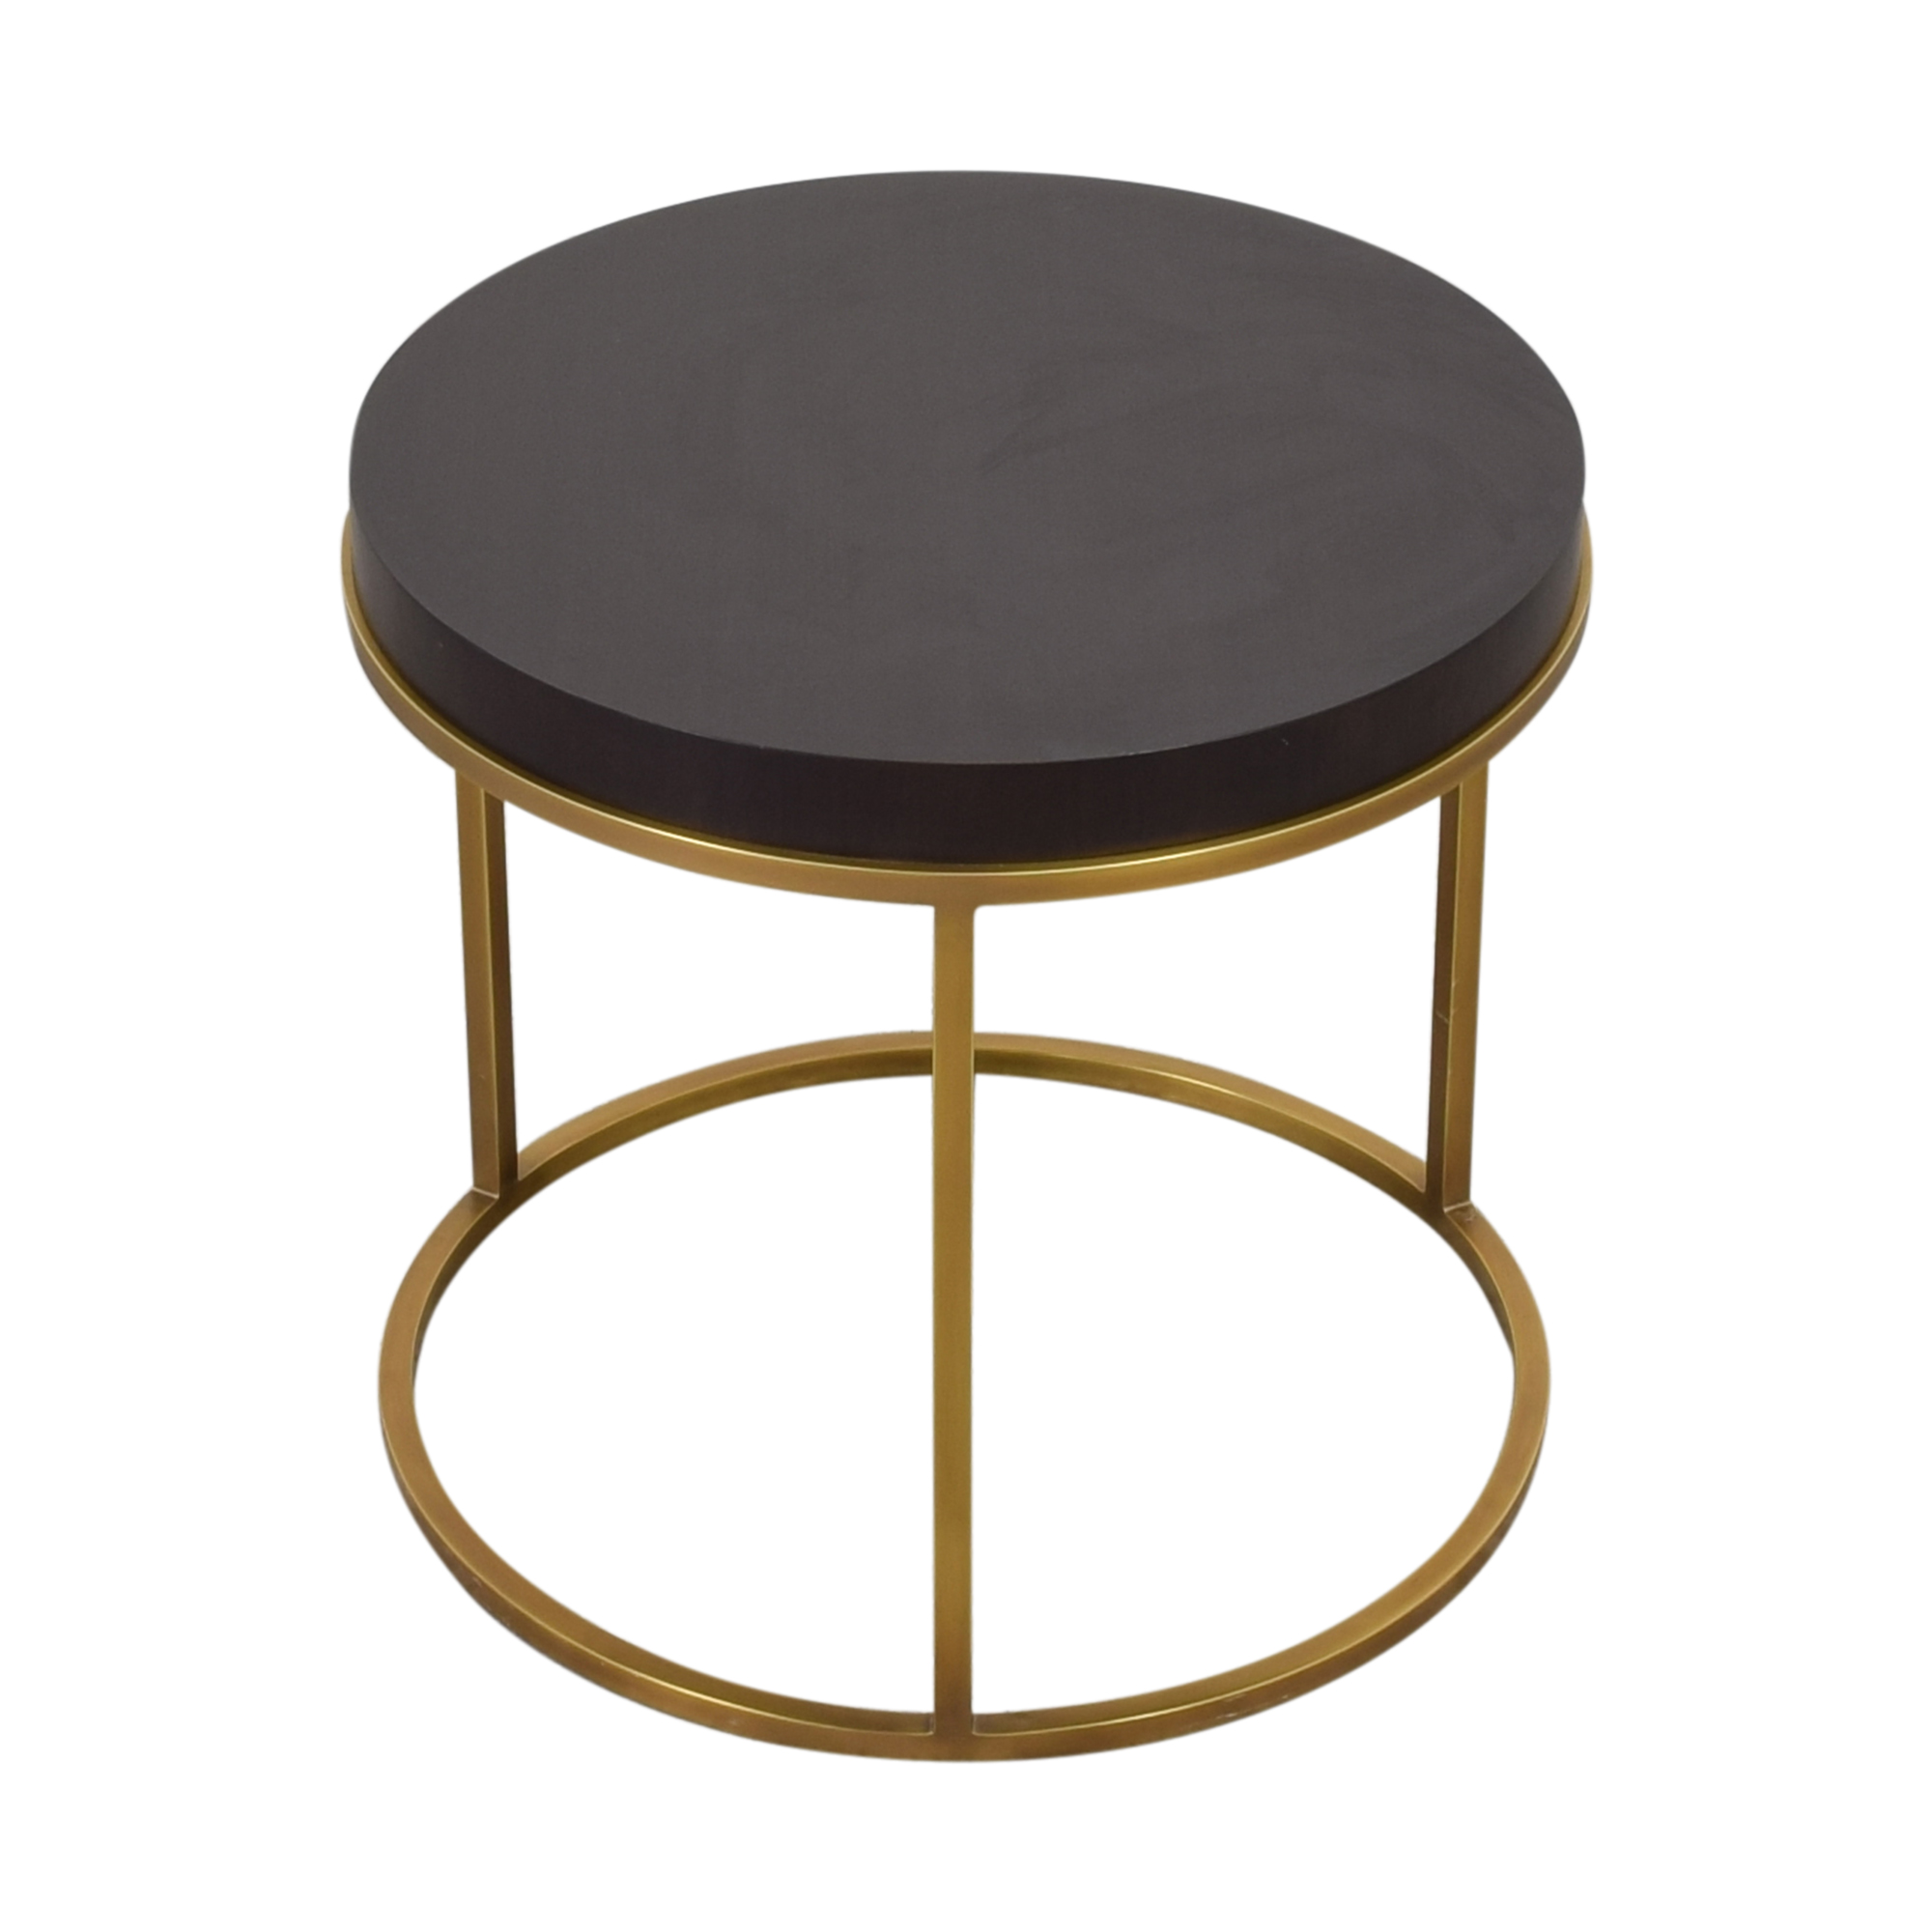 Restoration Hardware Restoration Hardware Nicholas Round Side Table